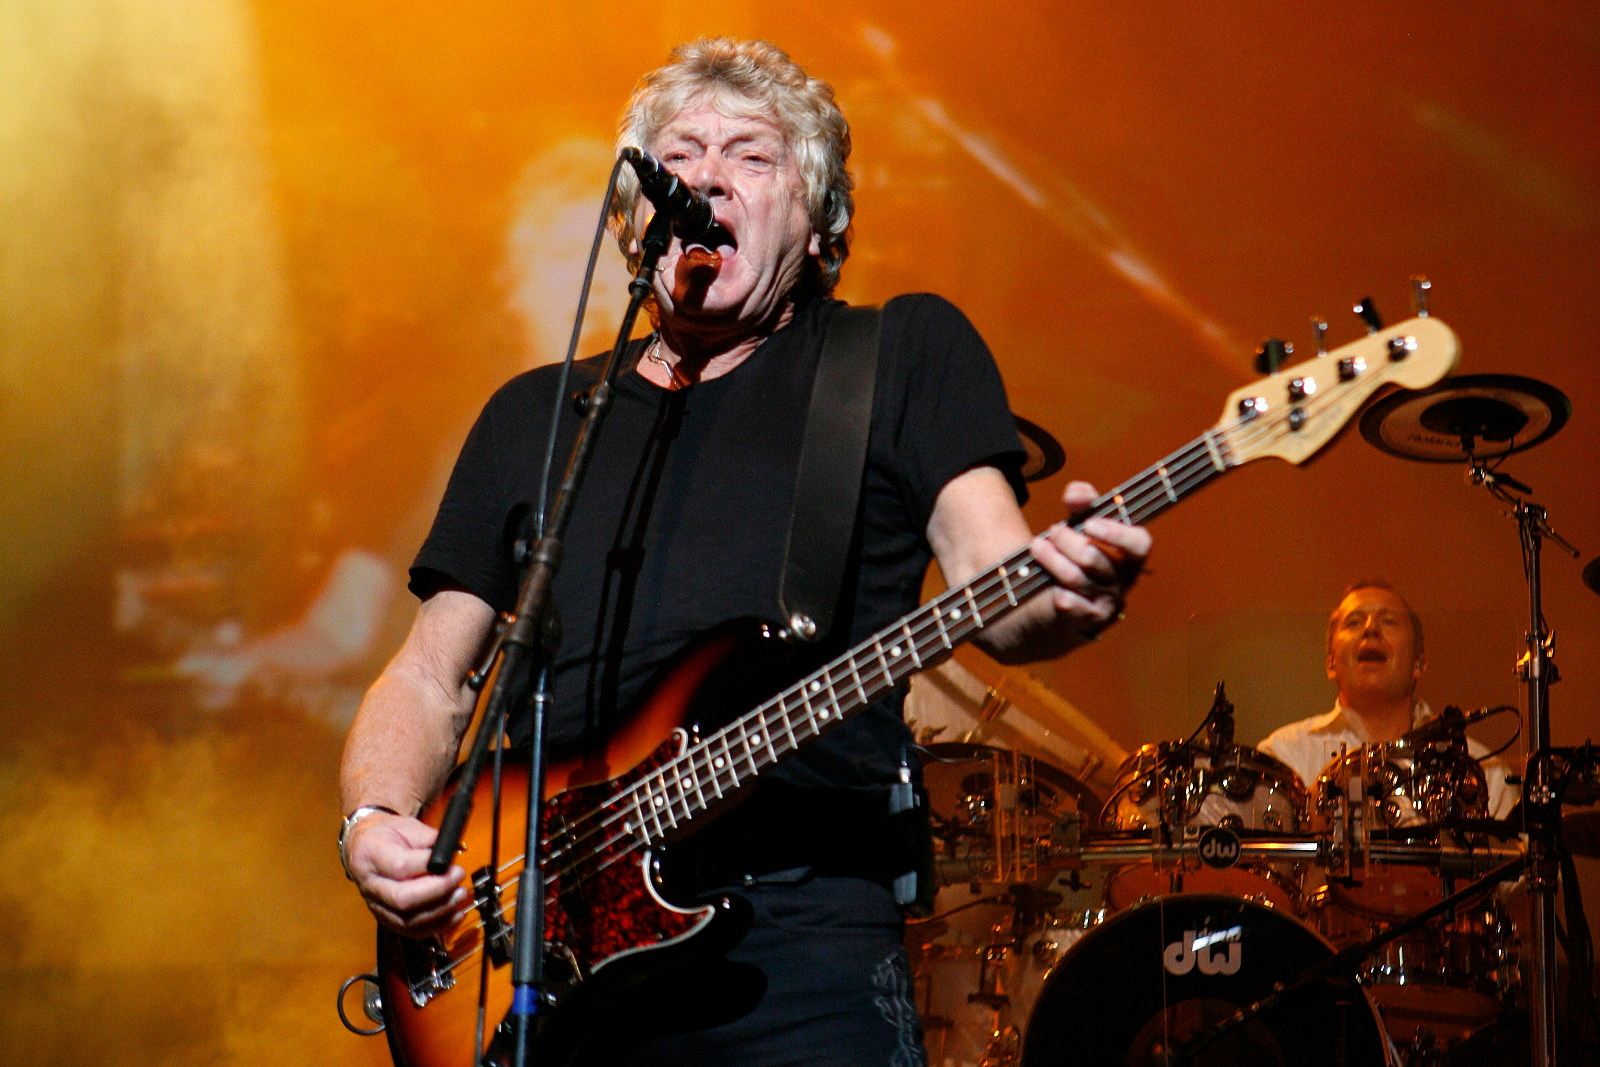 John Lodge on Moody Blues: 'I Don't Want That Music to Die'